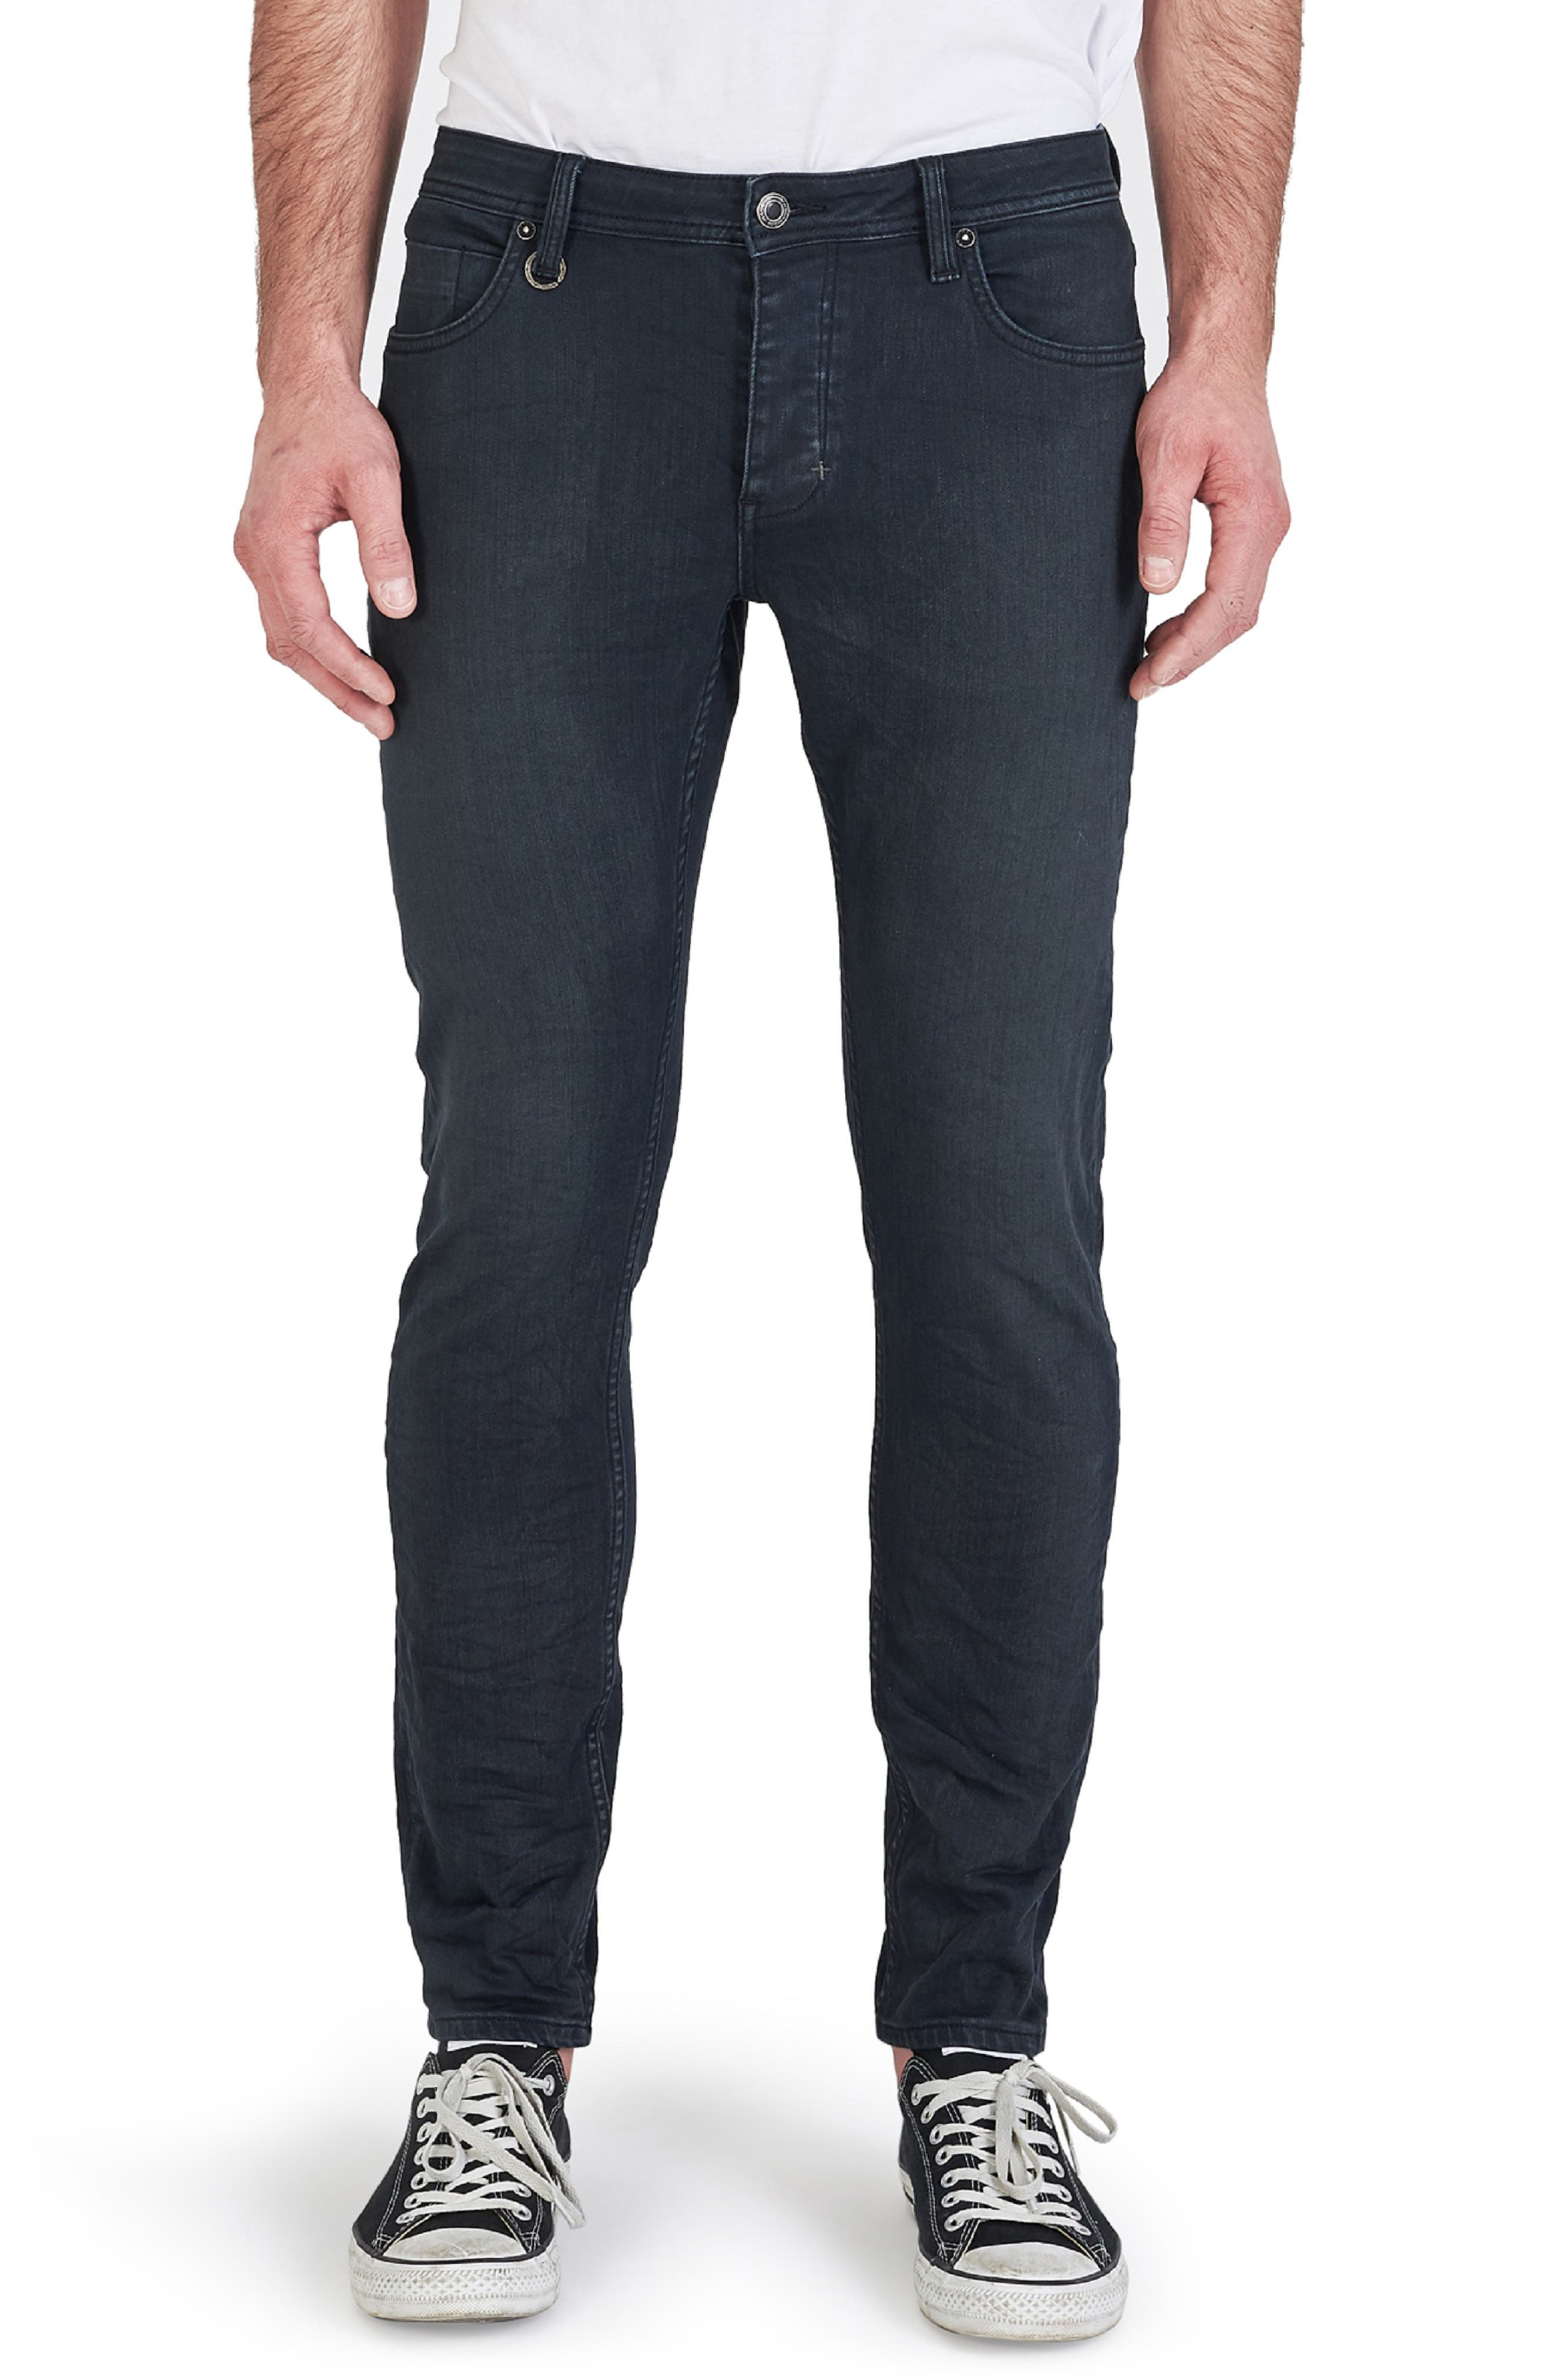 Iggy Skinny Fit Jeans,                             Main thumbnail 1, color,                             DUST